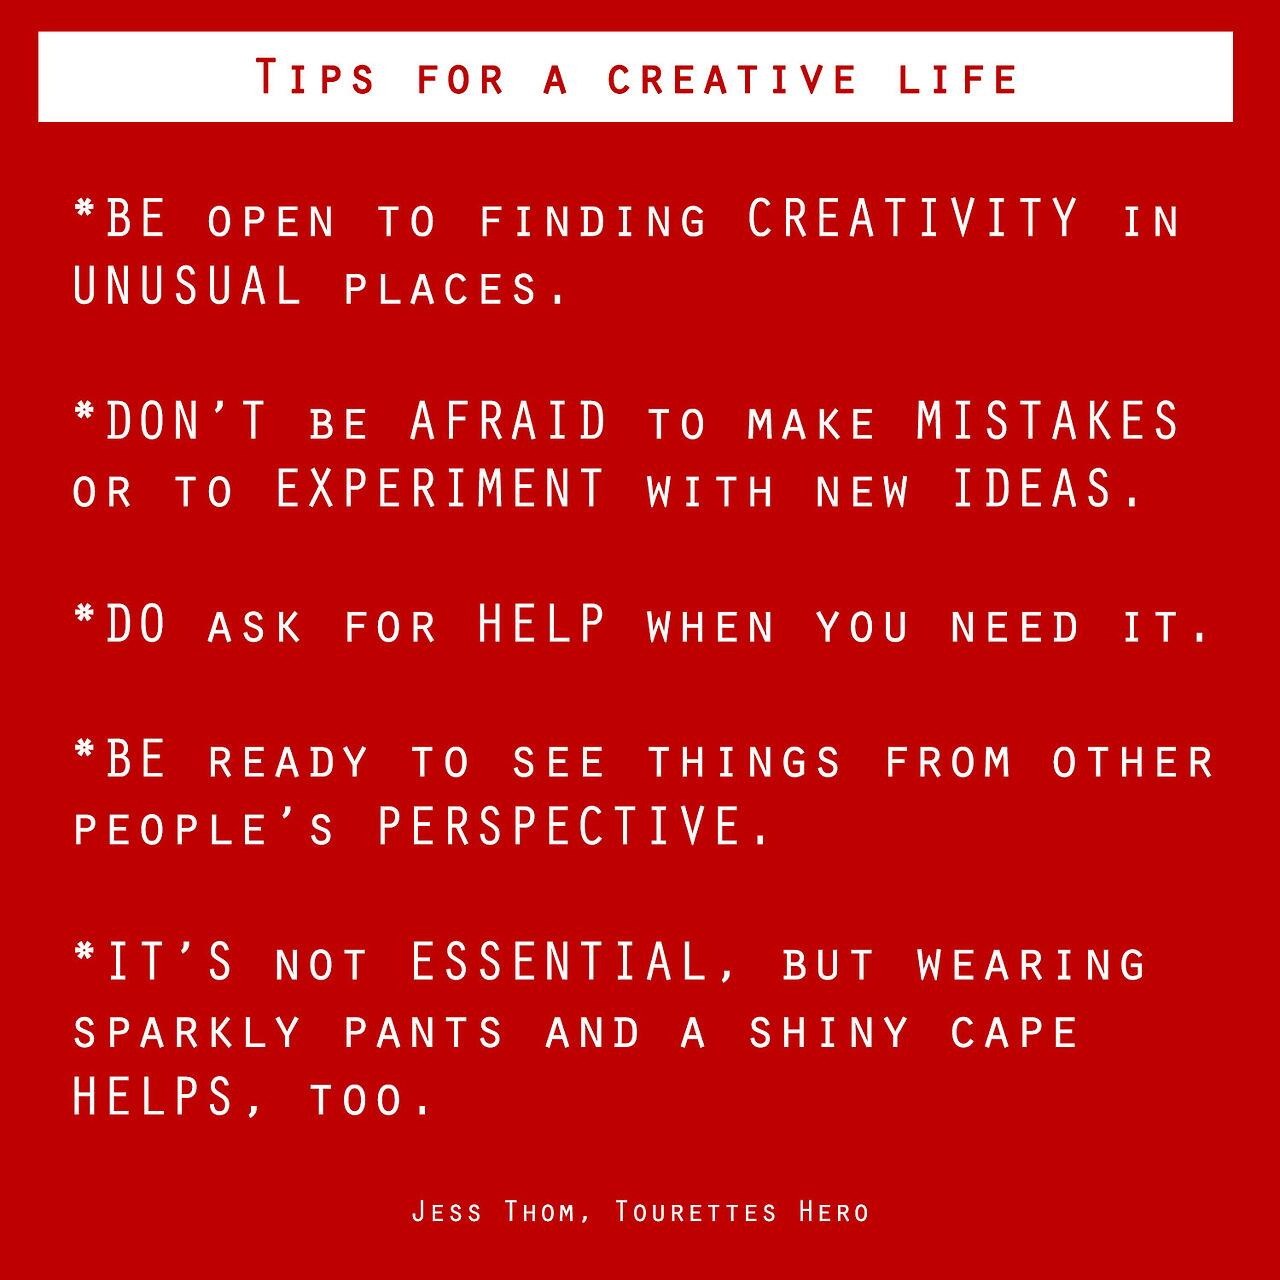 Twitter / TEDx: Tips for a creative life. Love ...